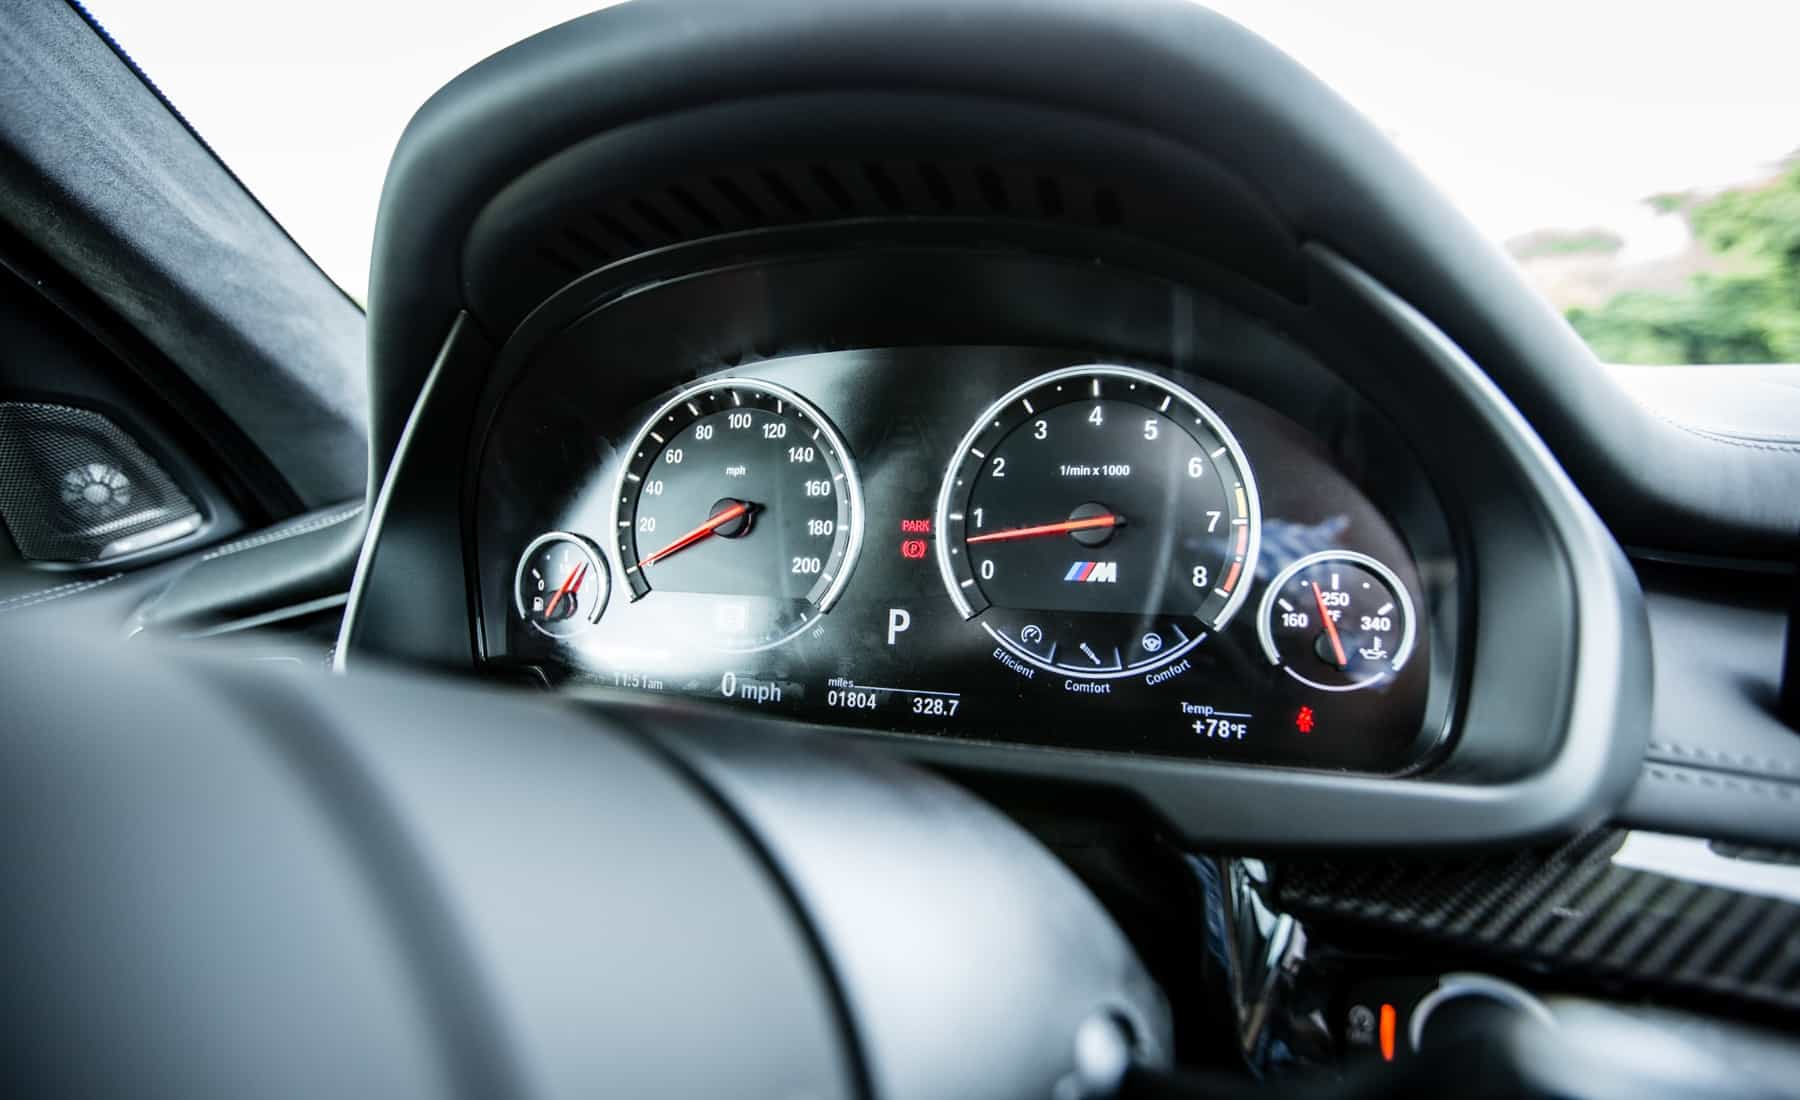 2017 BMW X5 M Interior View Speedometer (Photo 25 of 35)